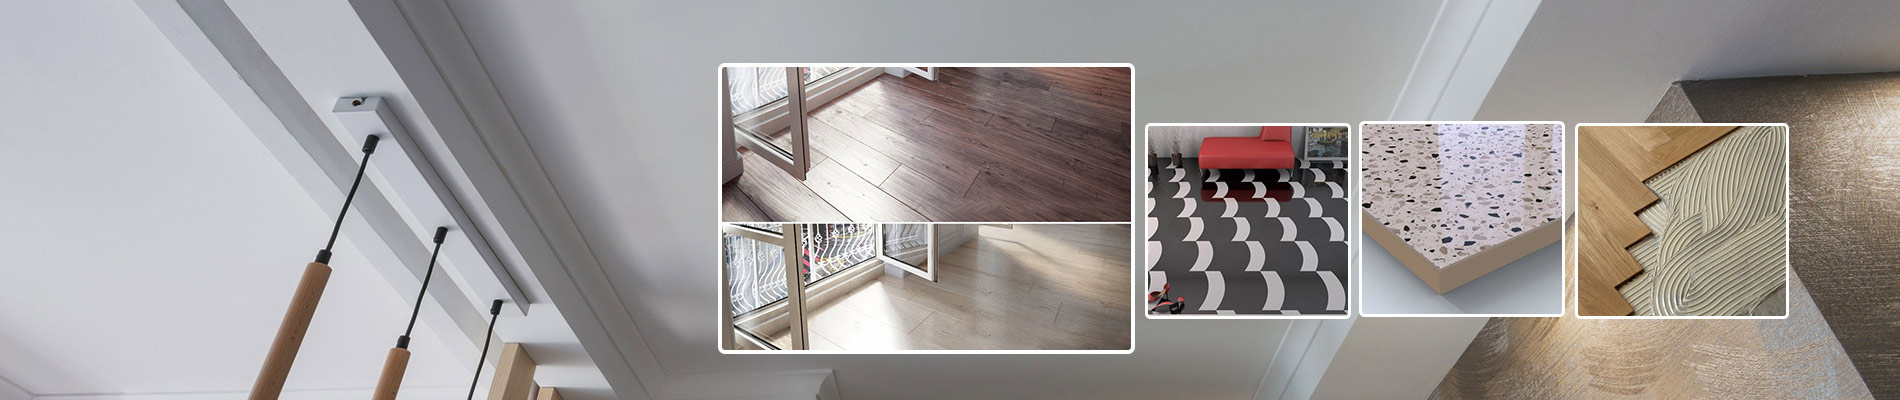 Revit Model of Raised Access Flooring Systems for a Leading Floor-Ceiling Solution Provider